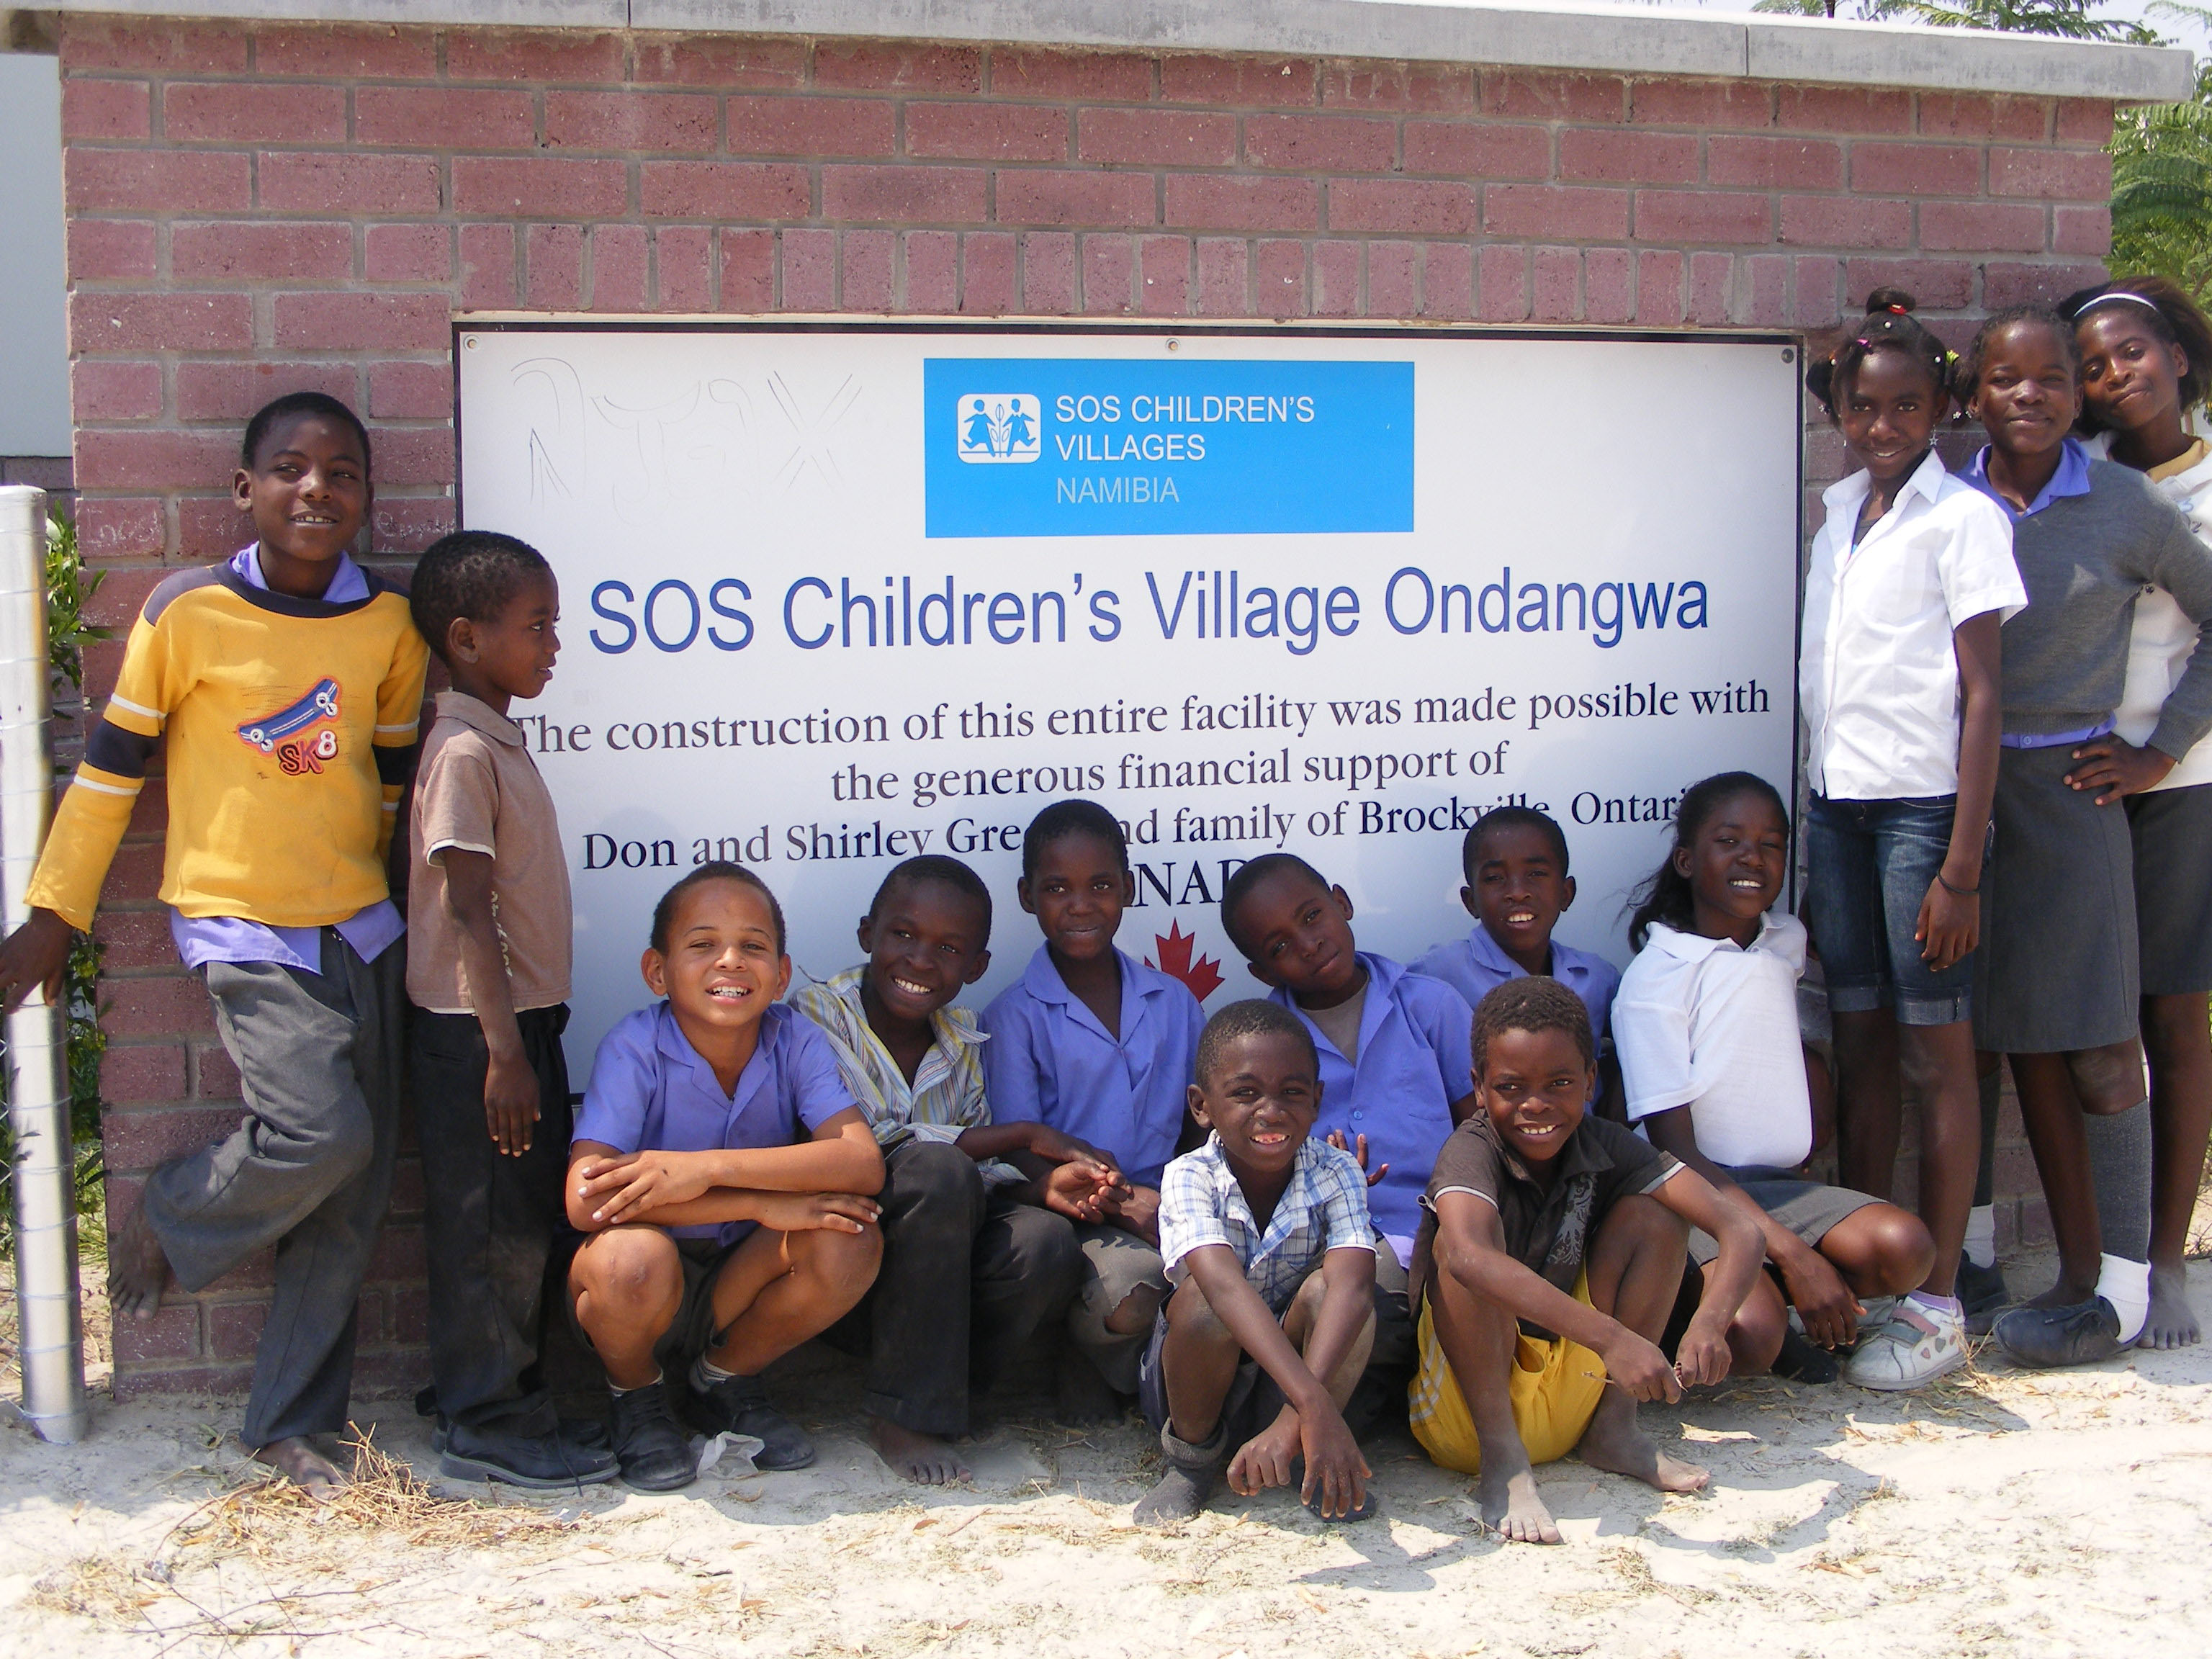 The SOS Children's Village in Onandgwa, Namibia, funded by Canadians